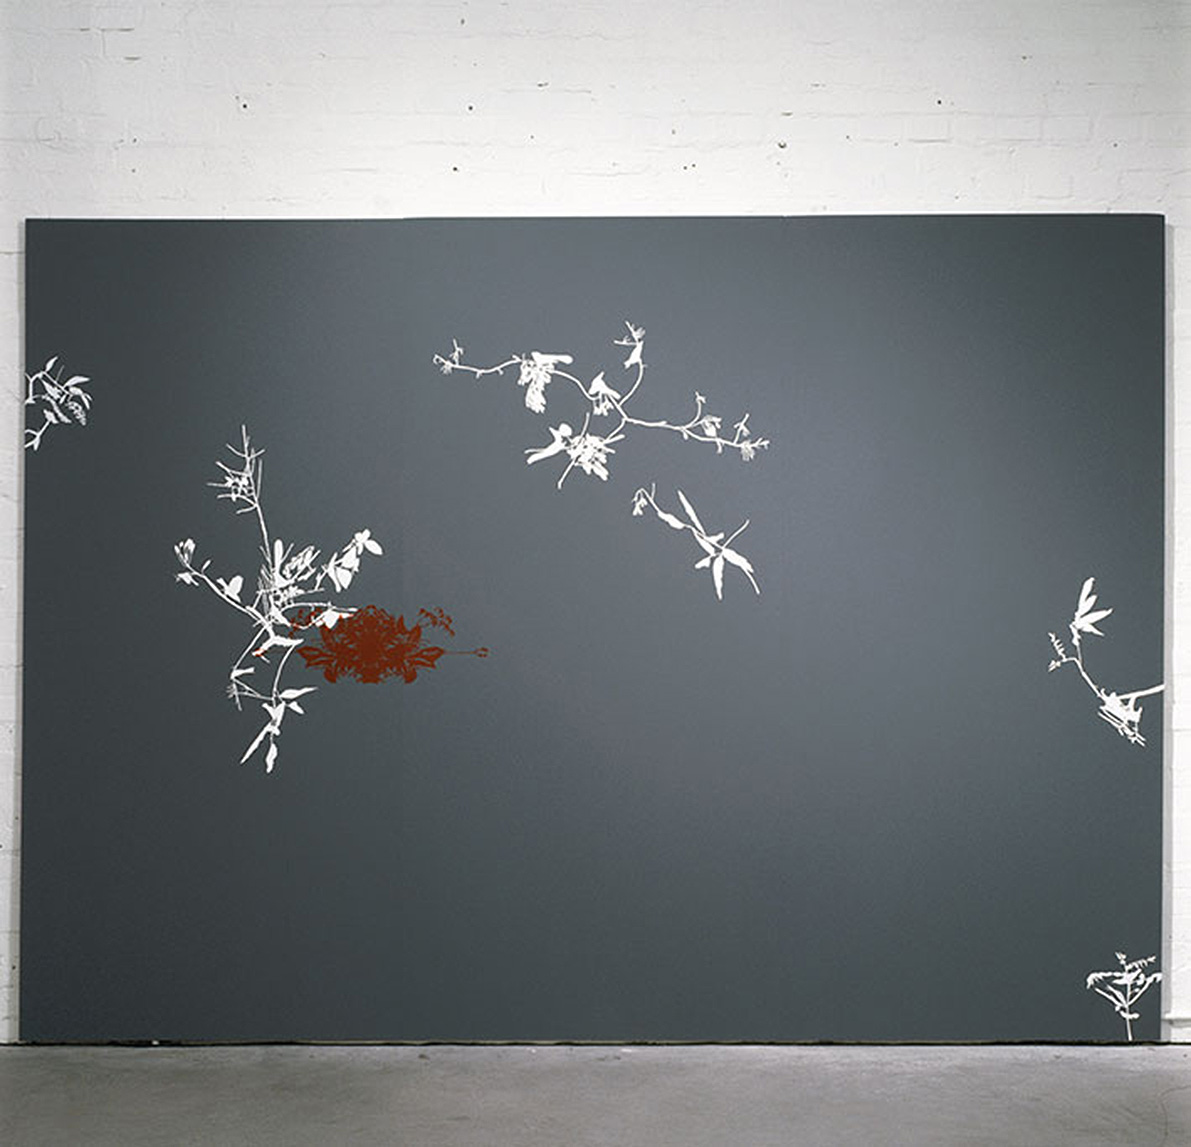 panel: chipboard, hand cut self adhesive PVC ornaments, 244 x 366 cm